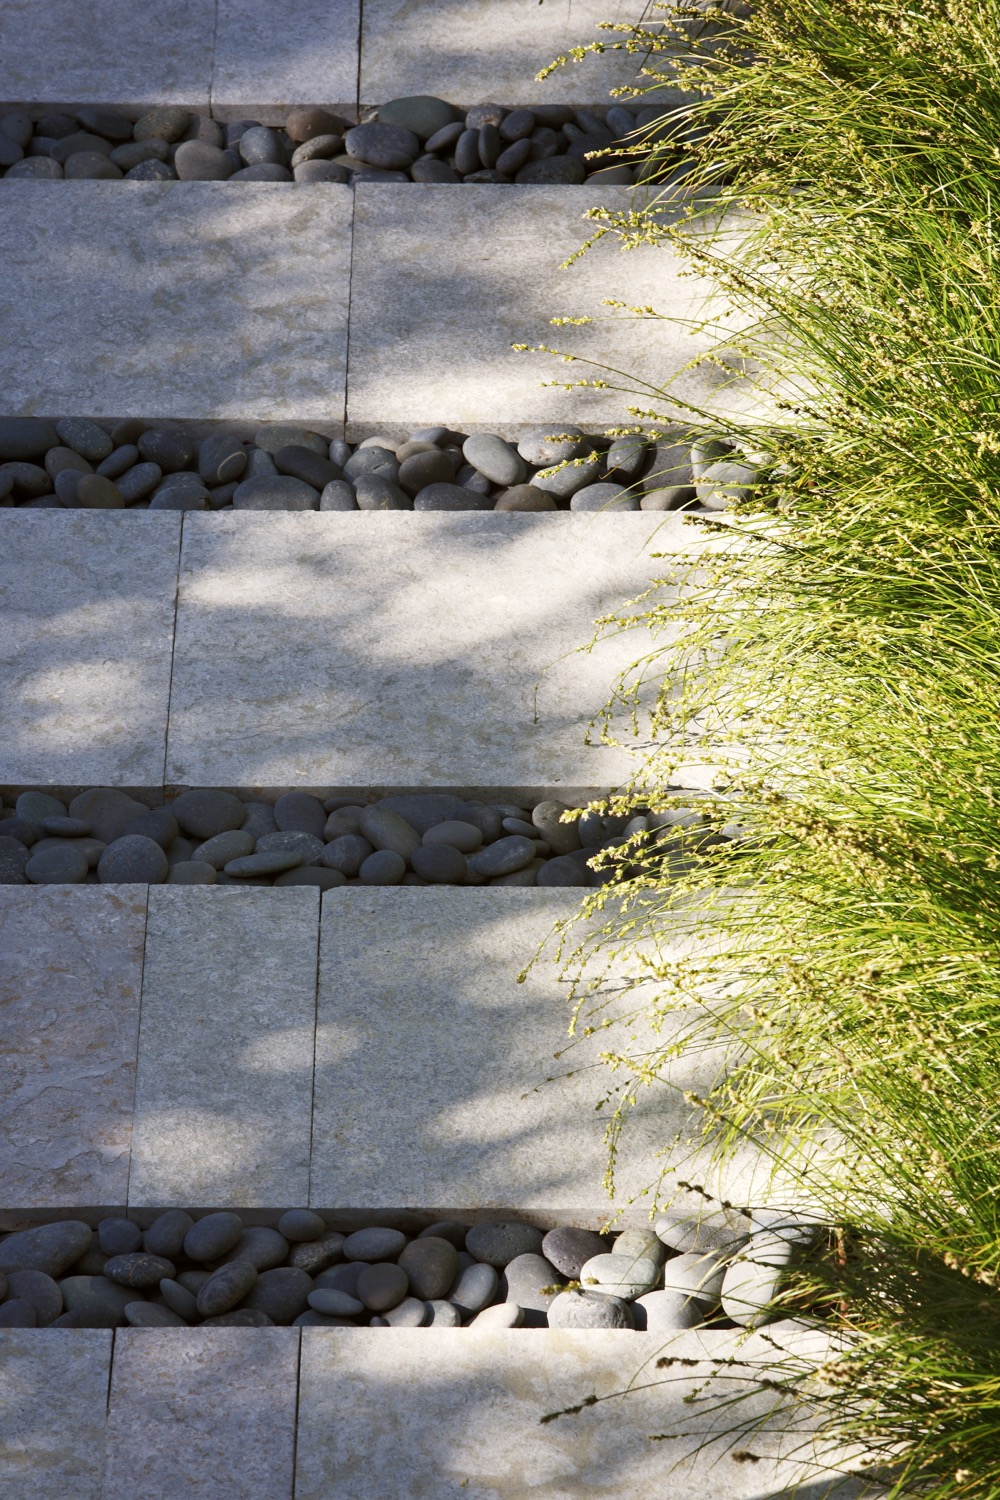 Bright green grasses contrast the greys of the stone and pebble paving.